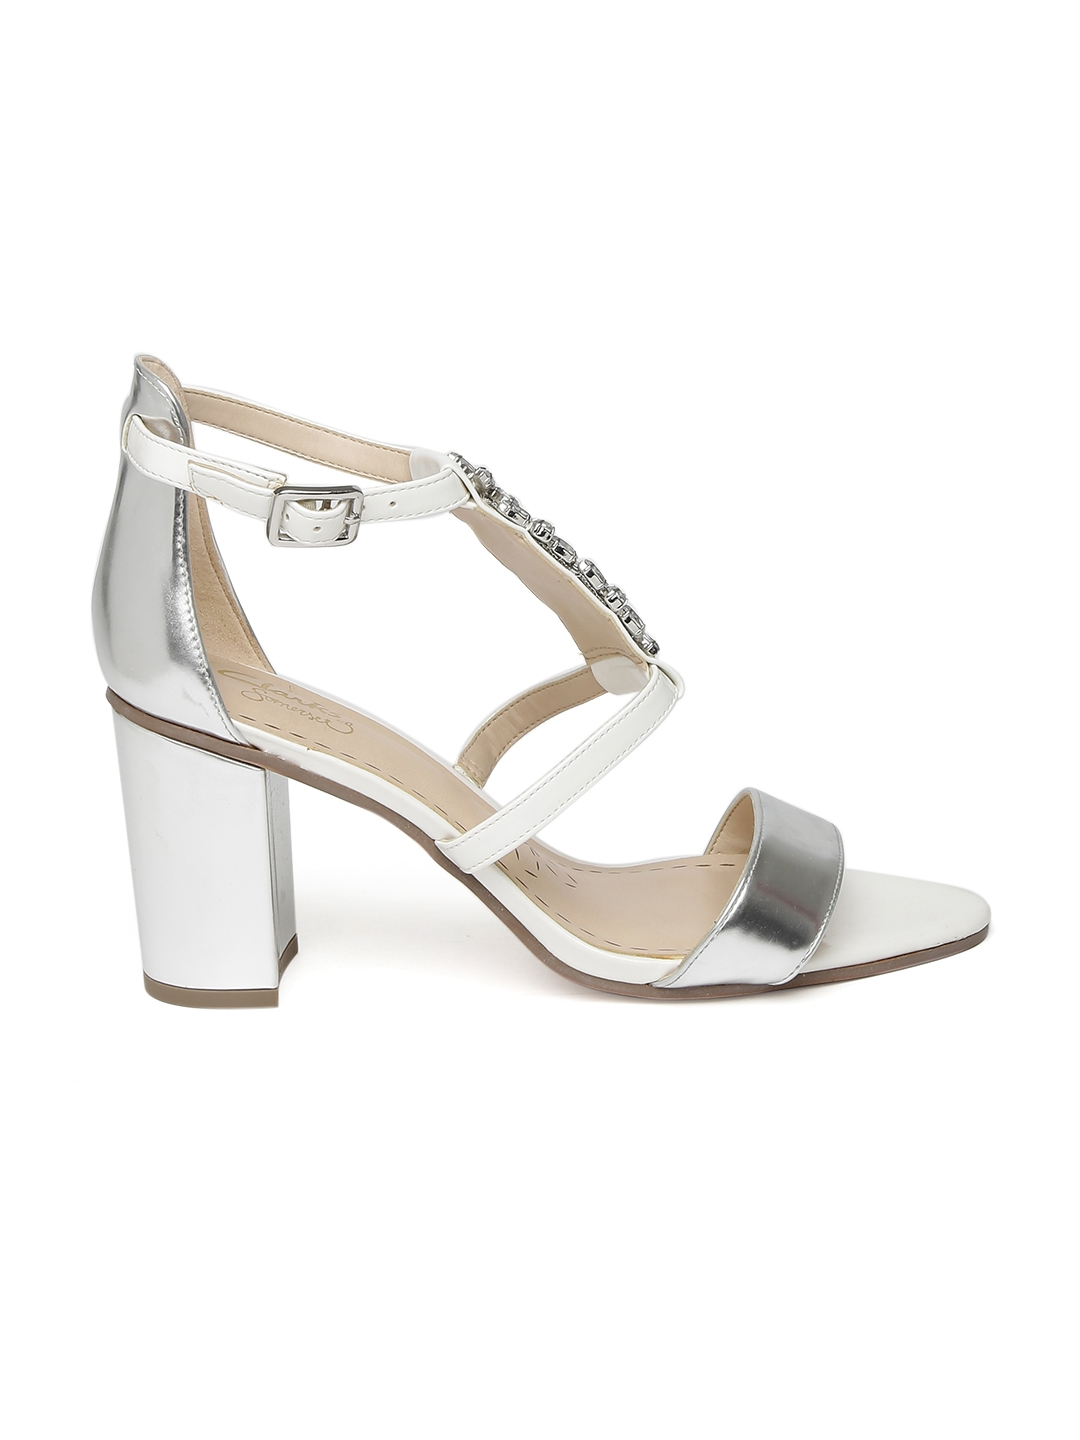 899811a442b Buy Clarks Women White   Silver Toned Embellished Heels - Heels for ...